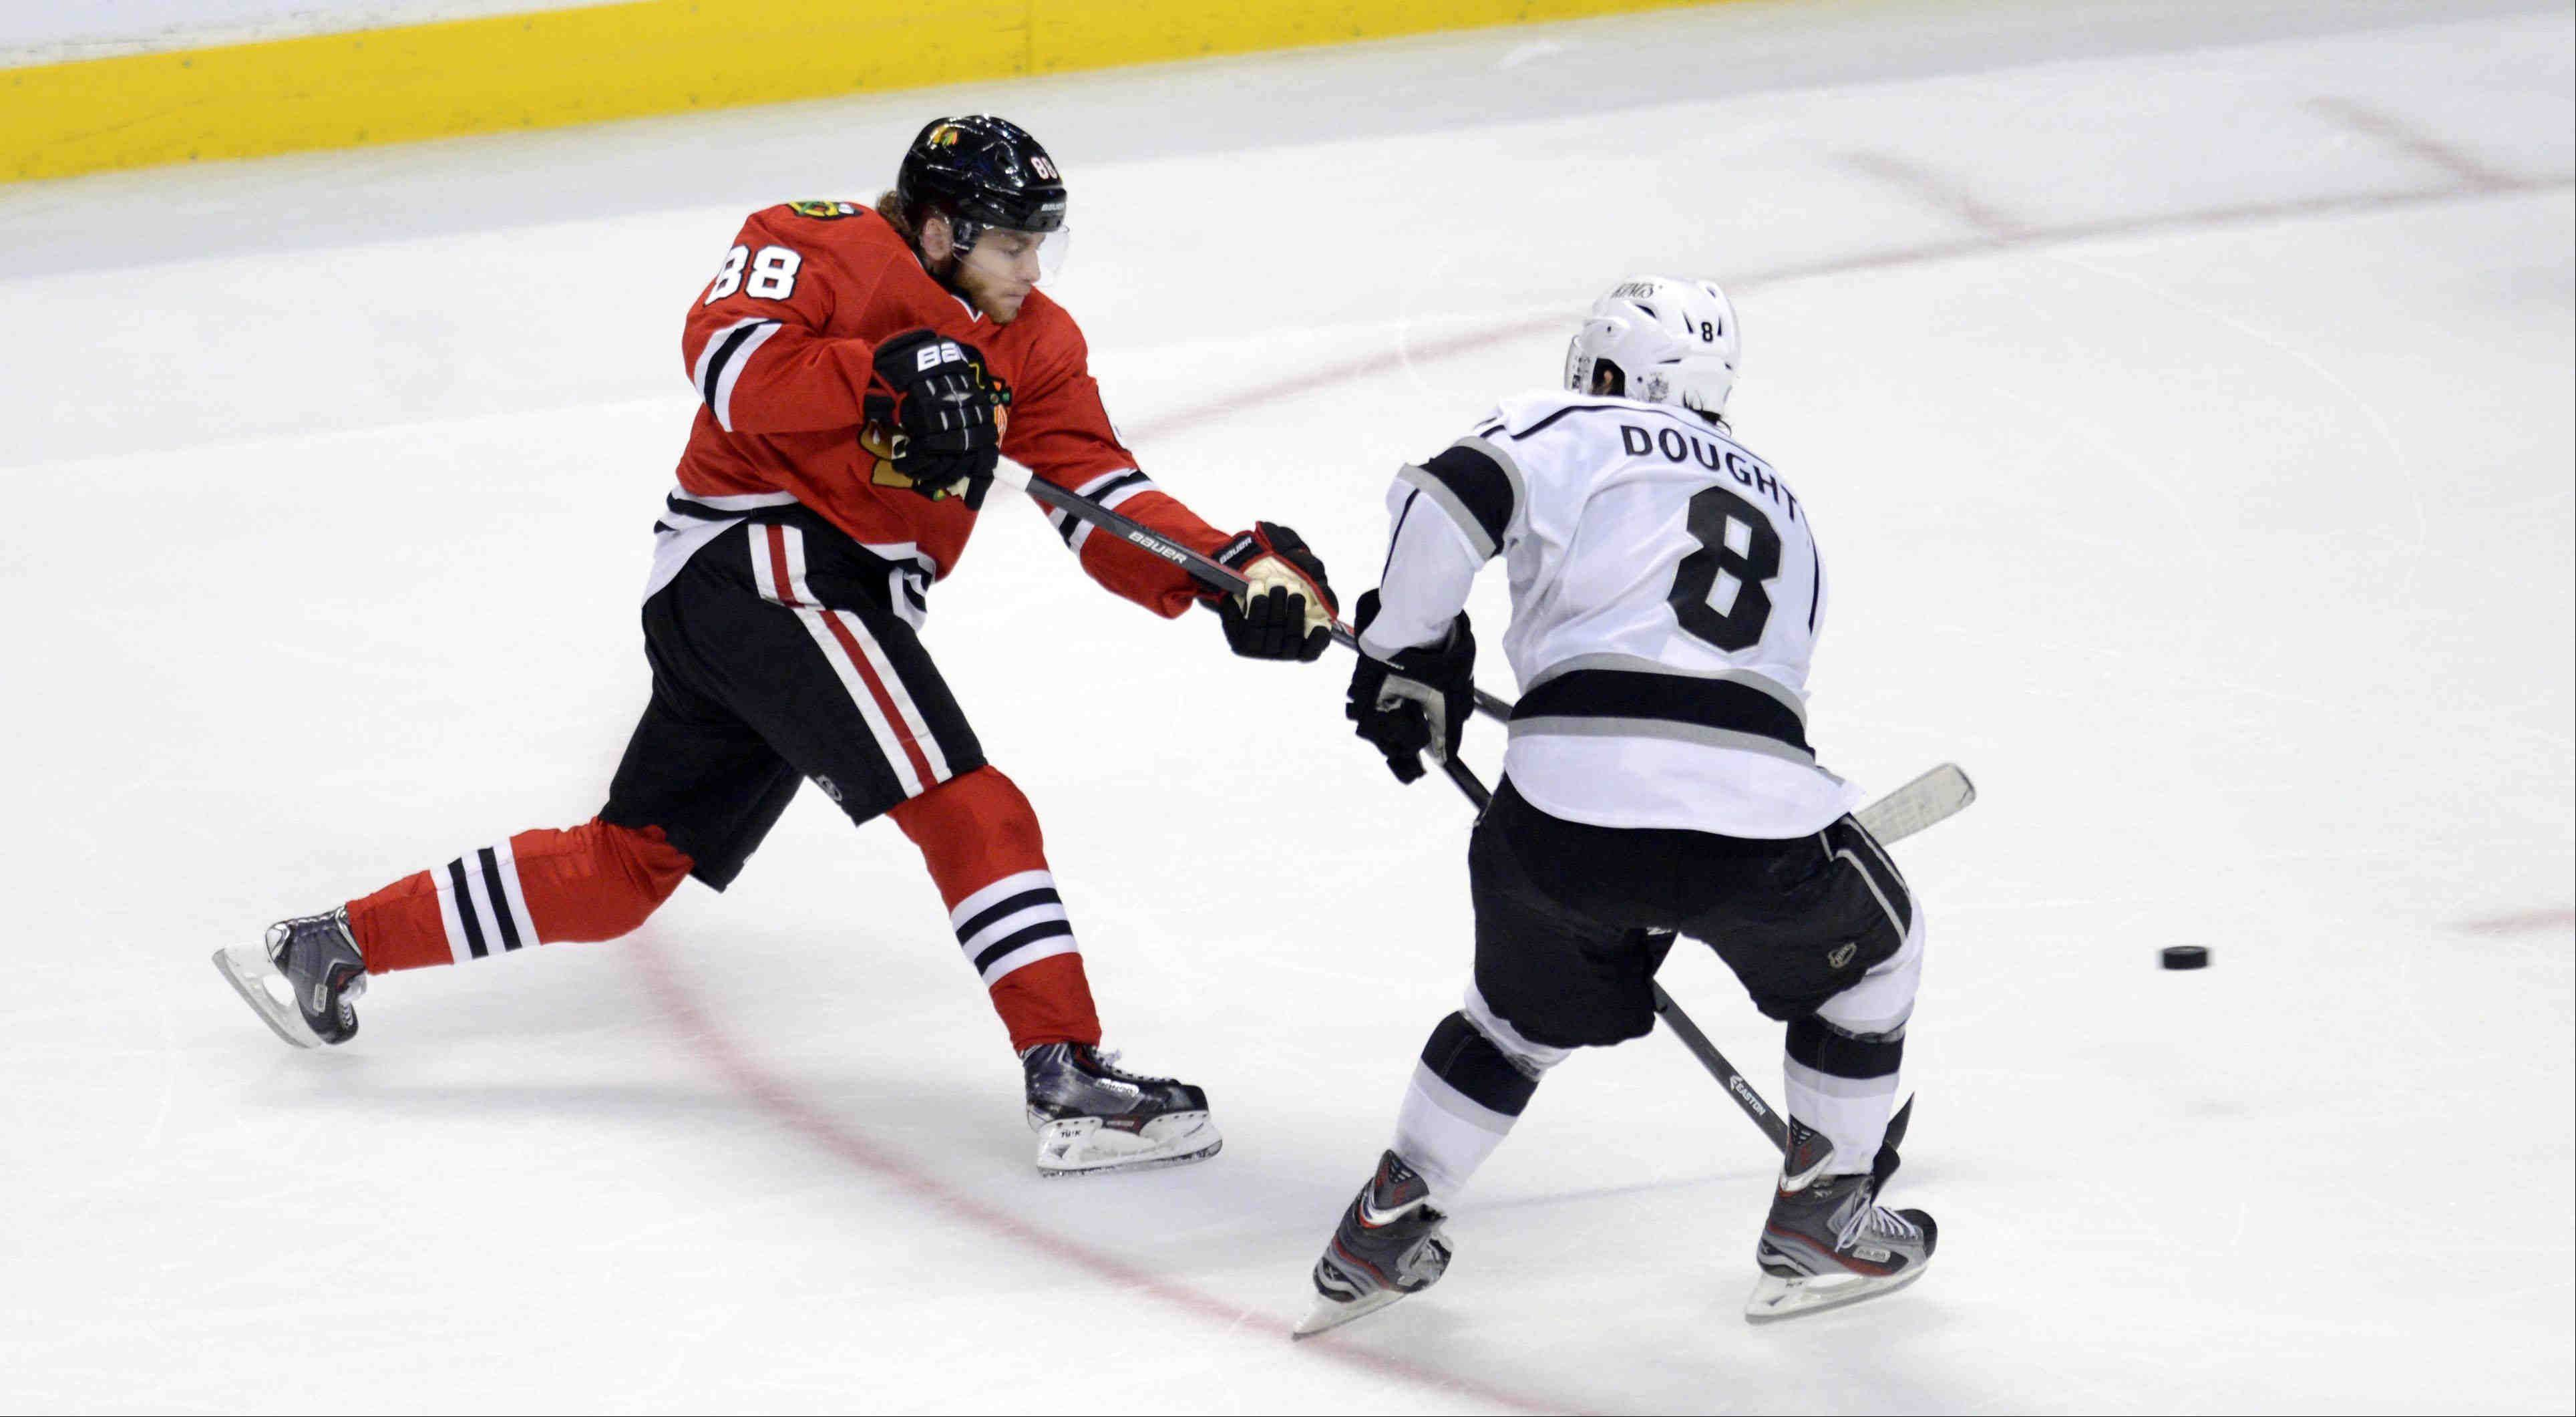 Blackhawks right wing Patrick Kane shoots in the second period against the defense of Los Angeles Kings defenseman Drew Doughty Saturday during the NHL Western Conference Finals Game 5 at the United Center in Chicago.